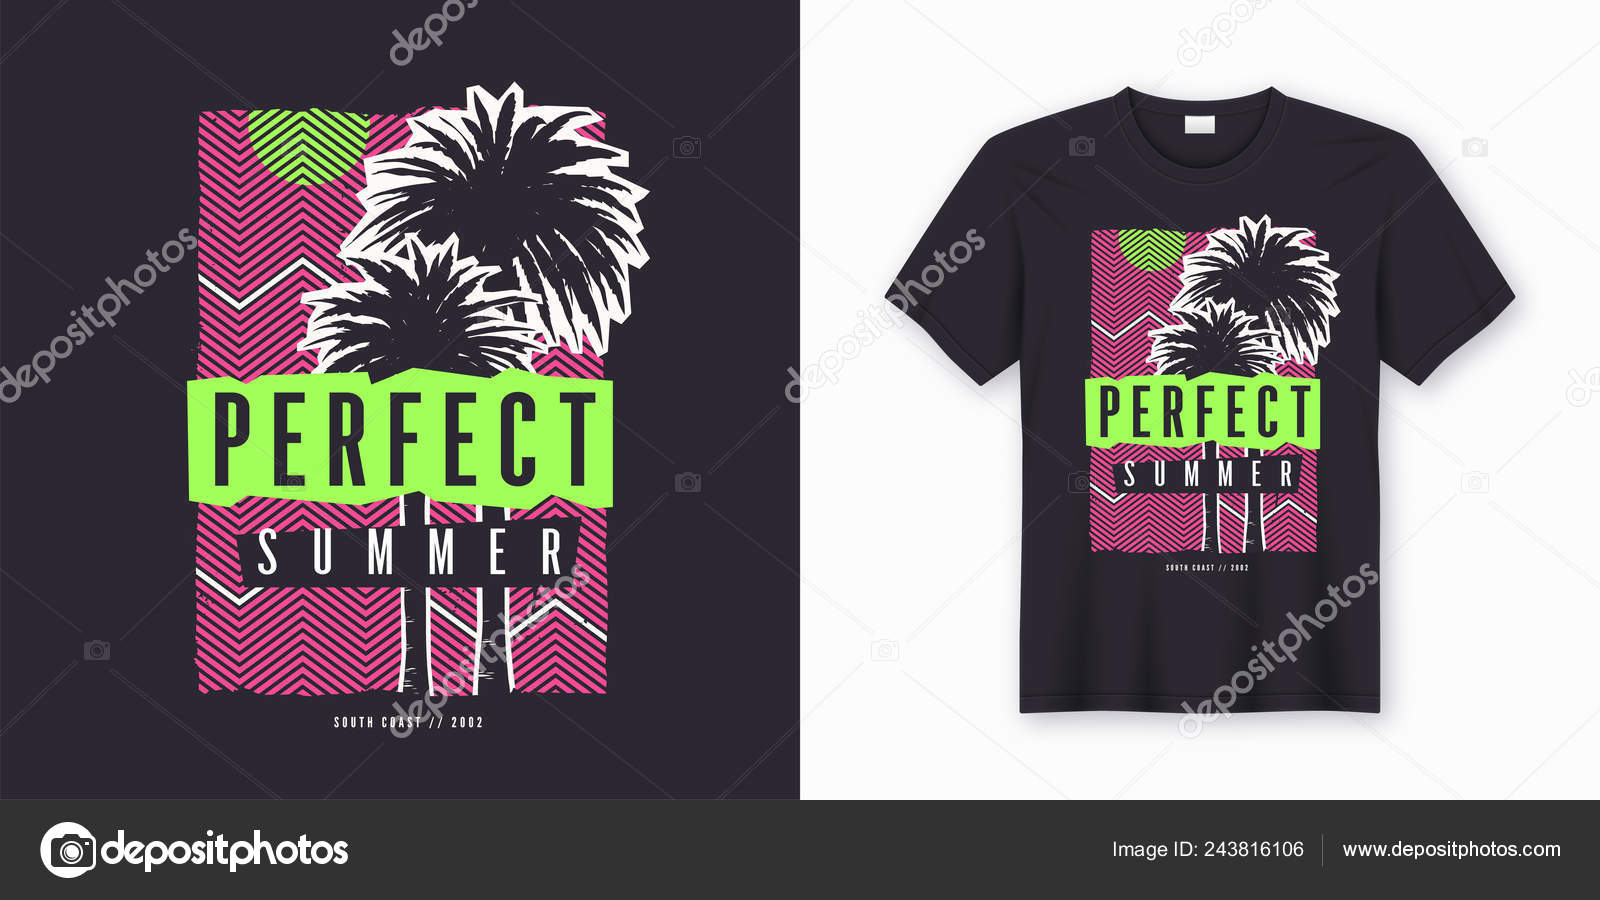 14372d8b2458 Perfect summer. Stylish colorful t-shirt design